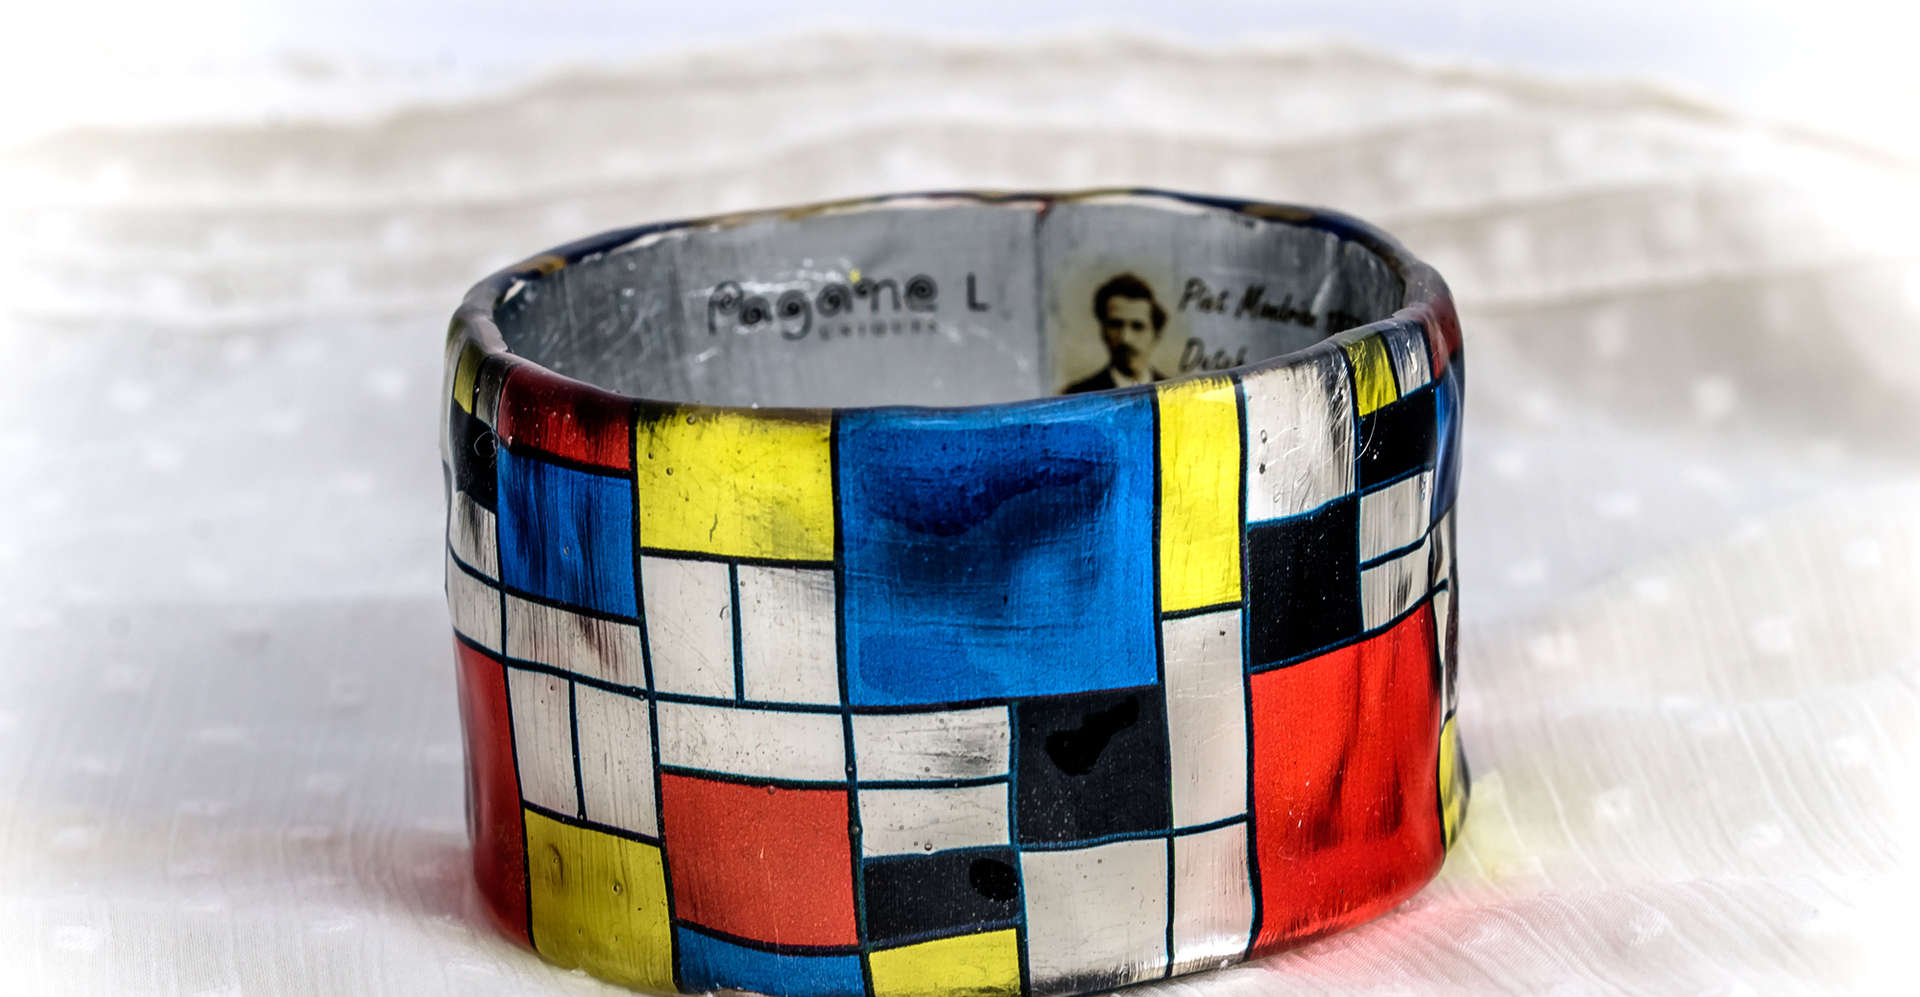 High Resin Bangle By PAGANE uniques (10)